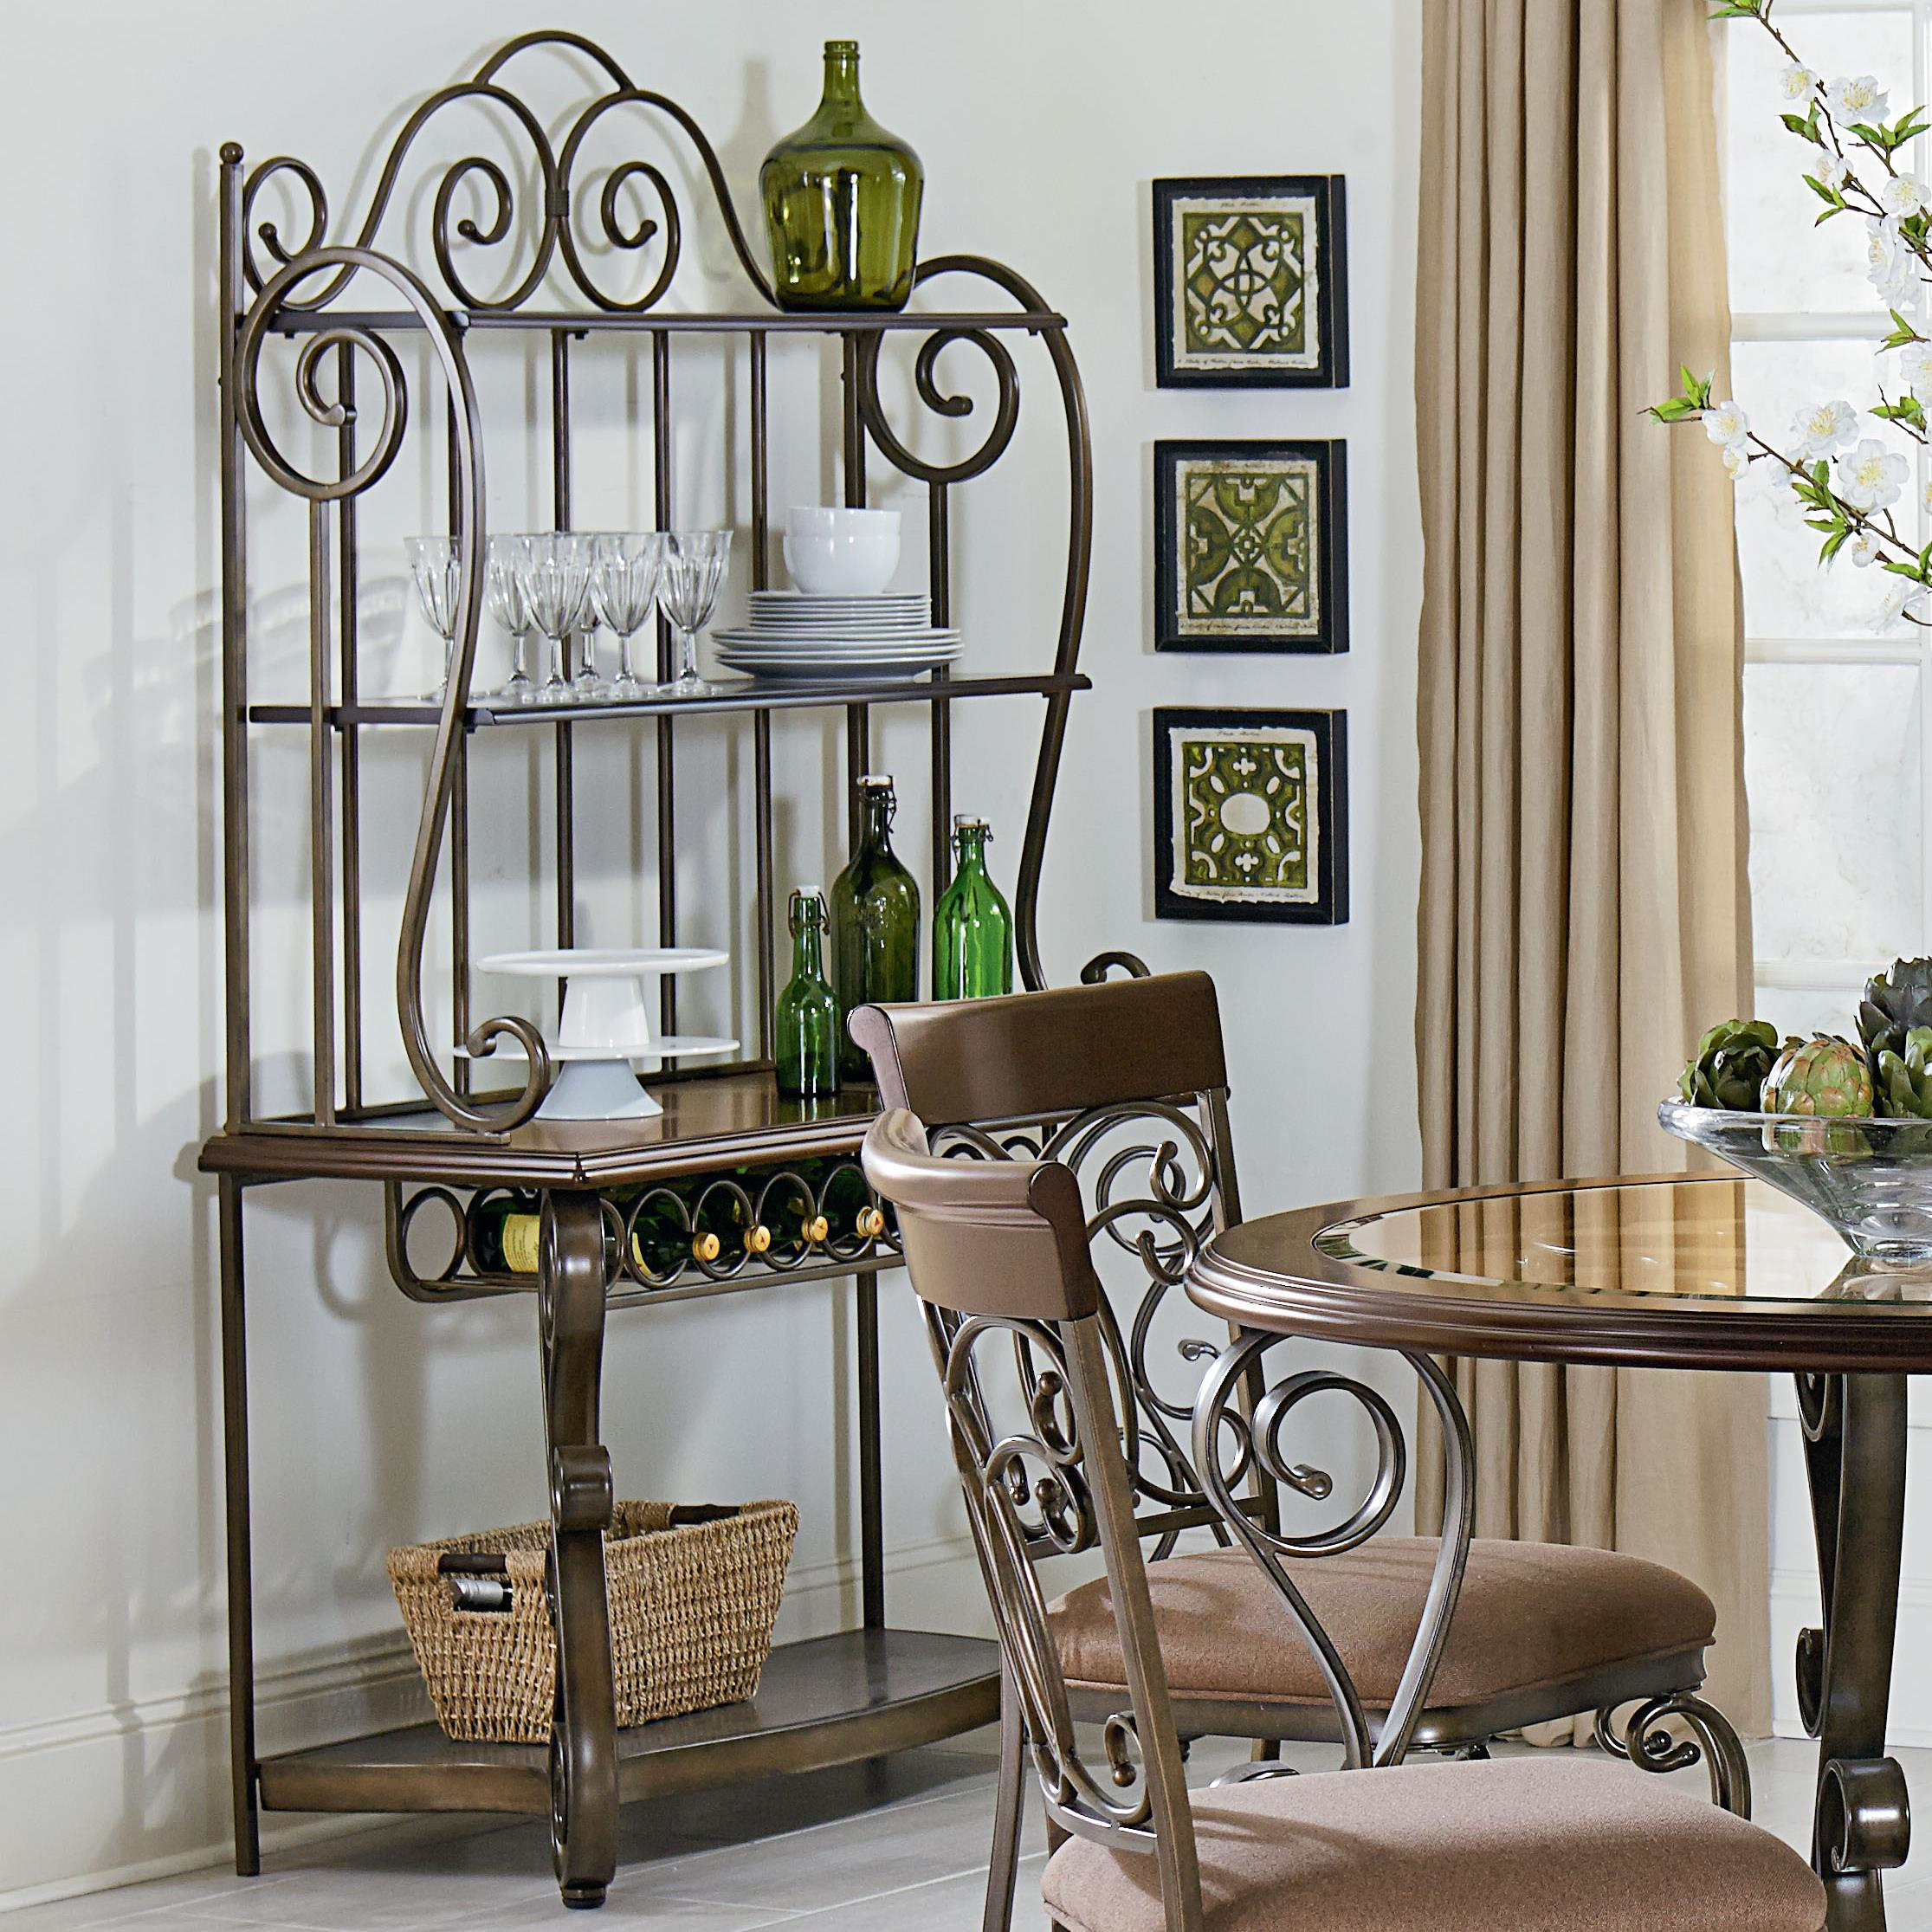 diy with style bakers shelves uk pipe wrought painted affordable shelf wood glass shelving iron and charming images rack wonderful racks turquoise